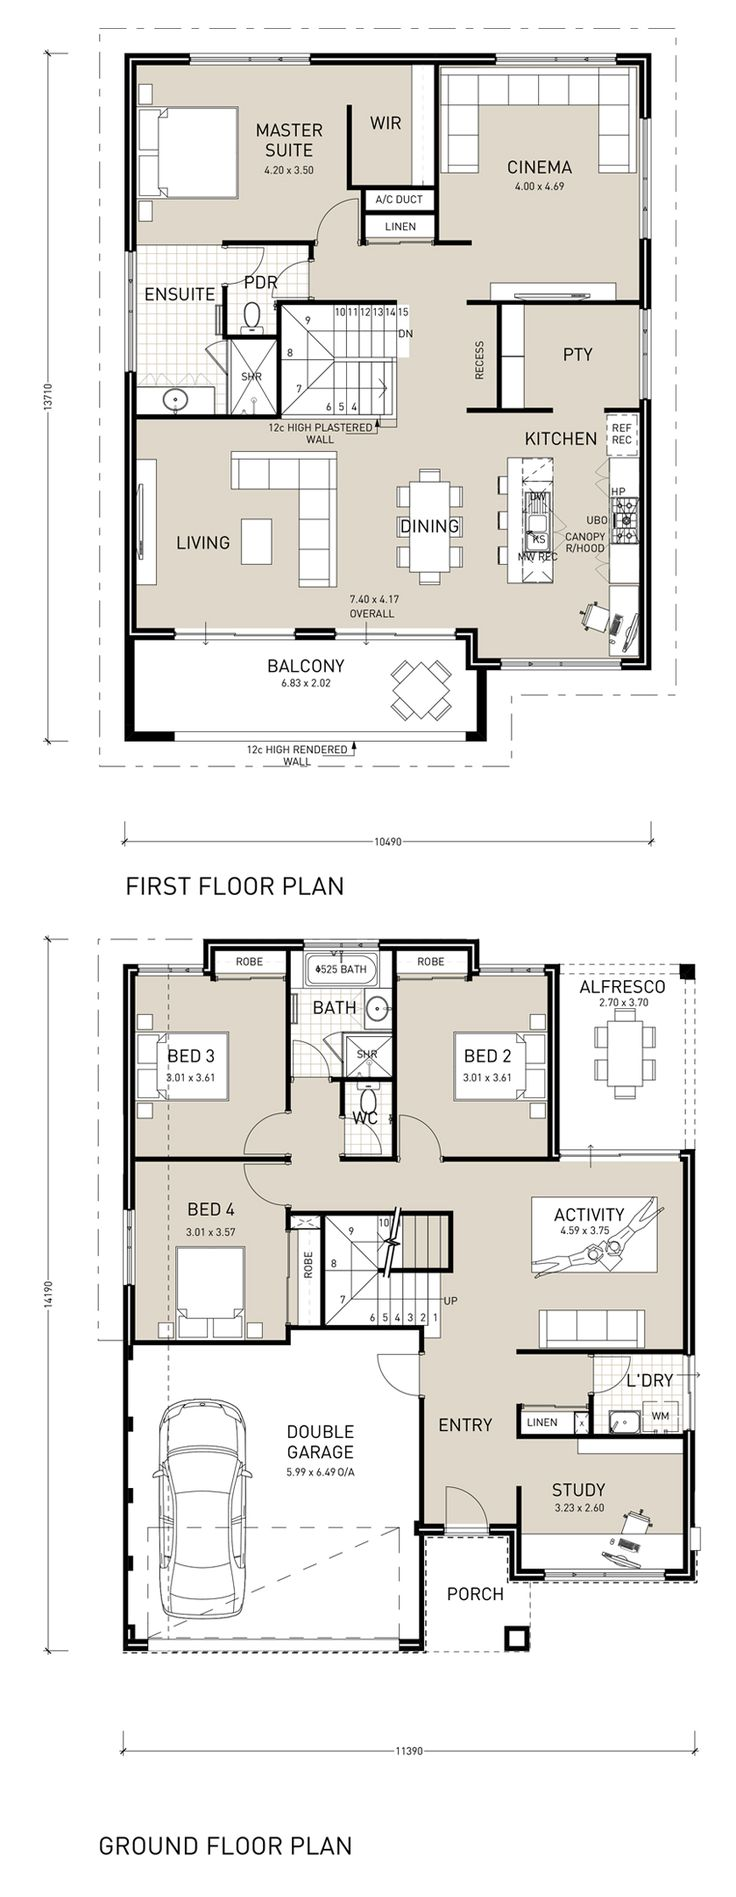 33 best reverse living house plans images on pinterest Reverse living house plans